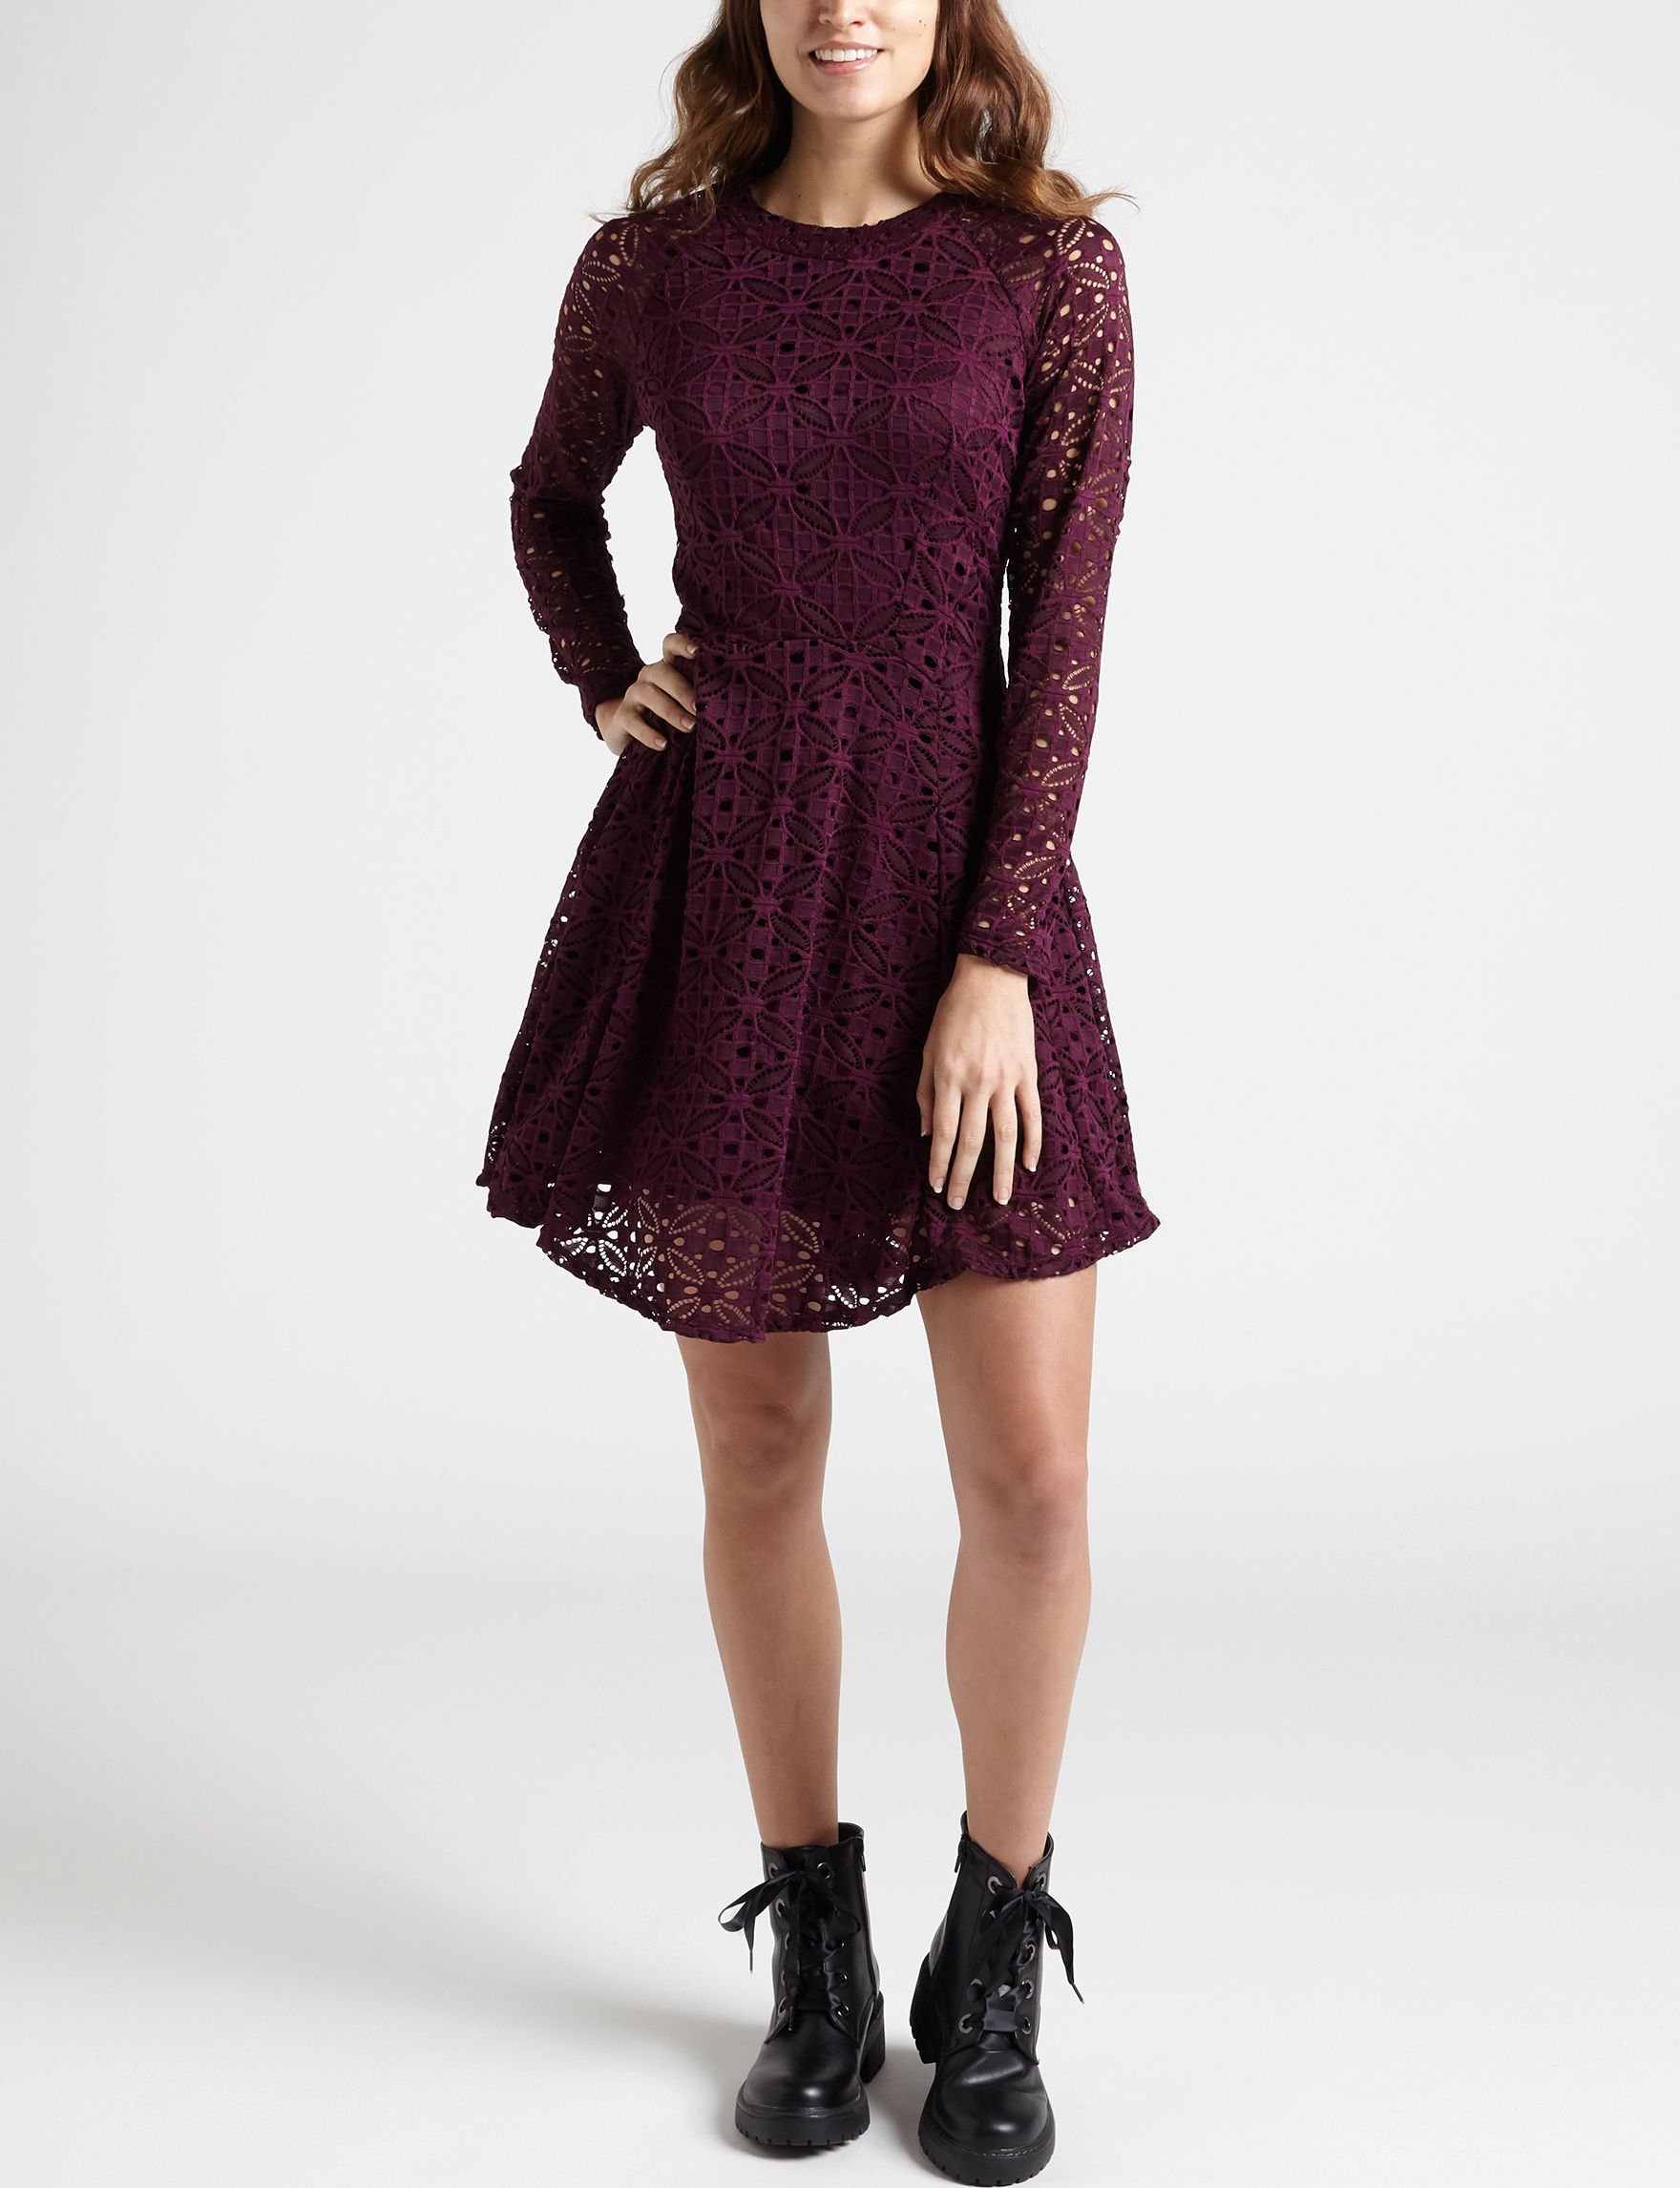 BeBop Plum Everyday & Casual Fit & Flare Dresses